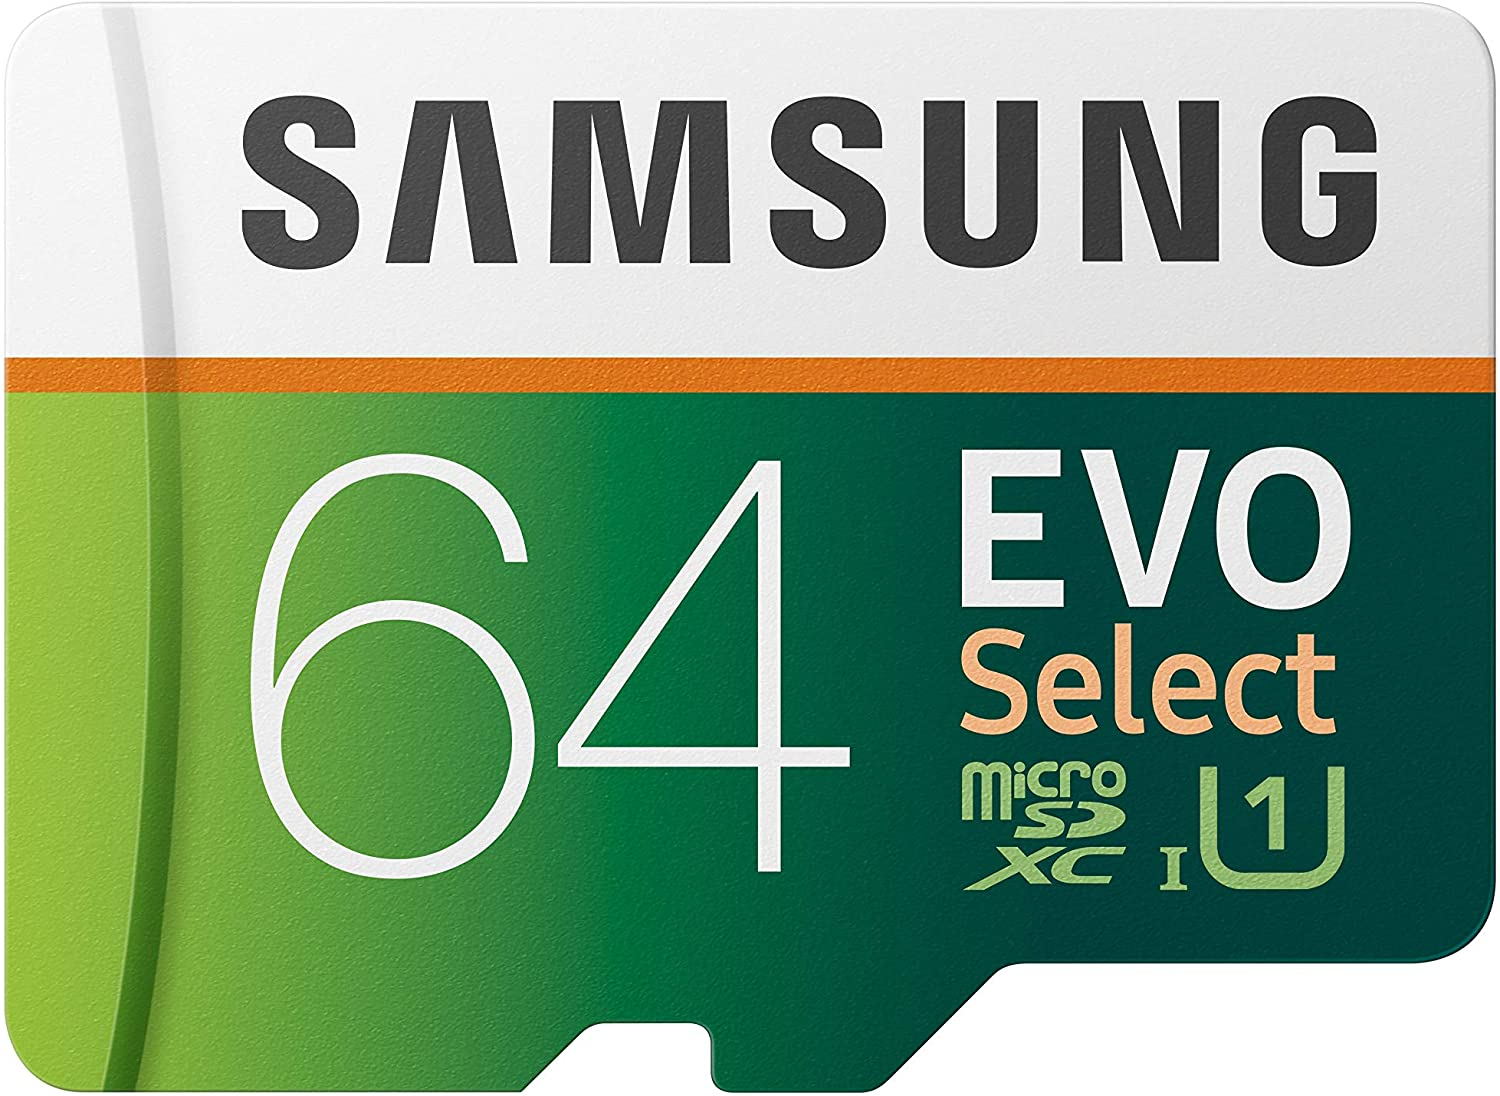 SAMSUNG EVO Select 64GB microSDXC UHS-I U1 100MB/s Full HD & 4K UHD Memory Card with Adapter (MB-ME64HA): Computers & Accessories